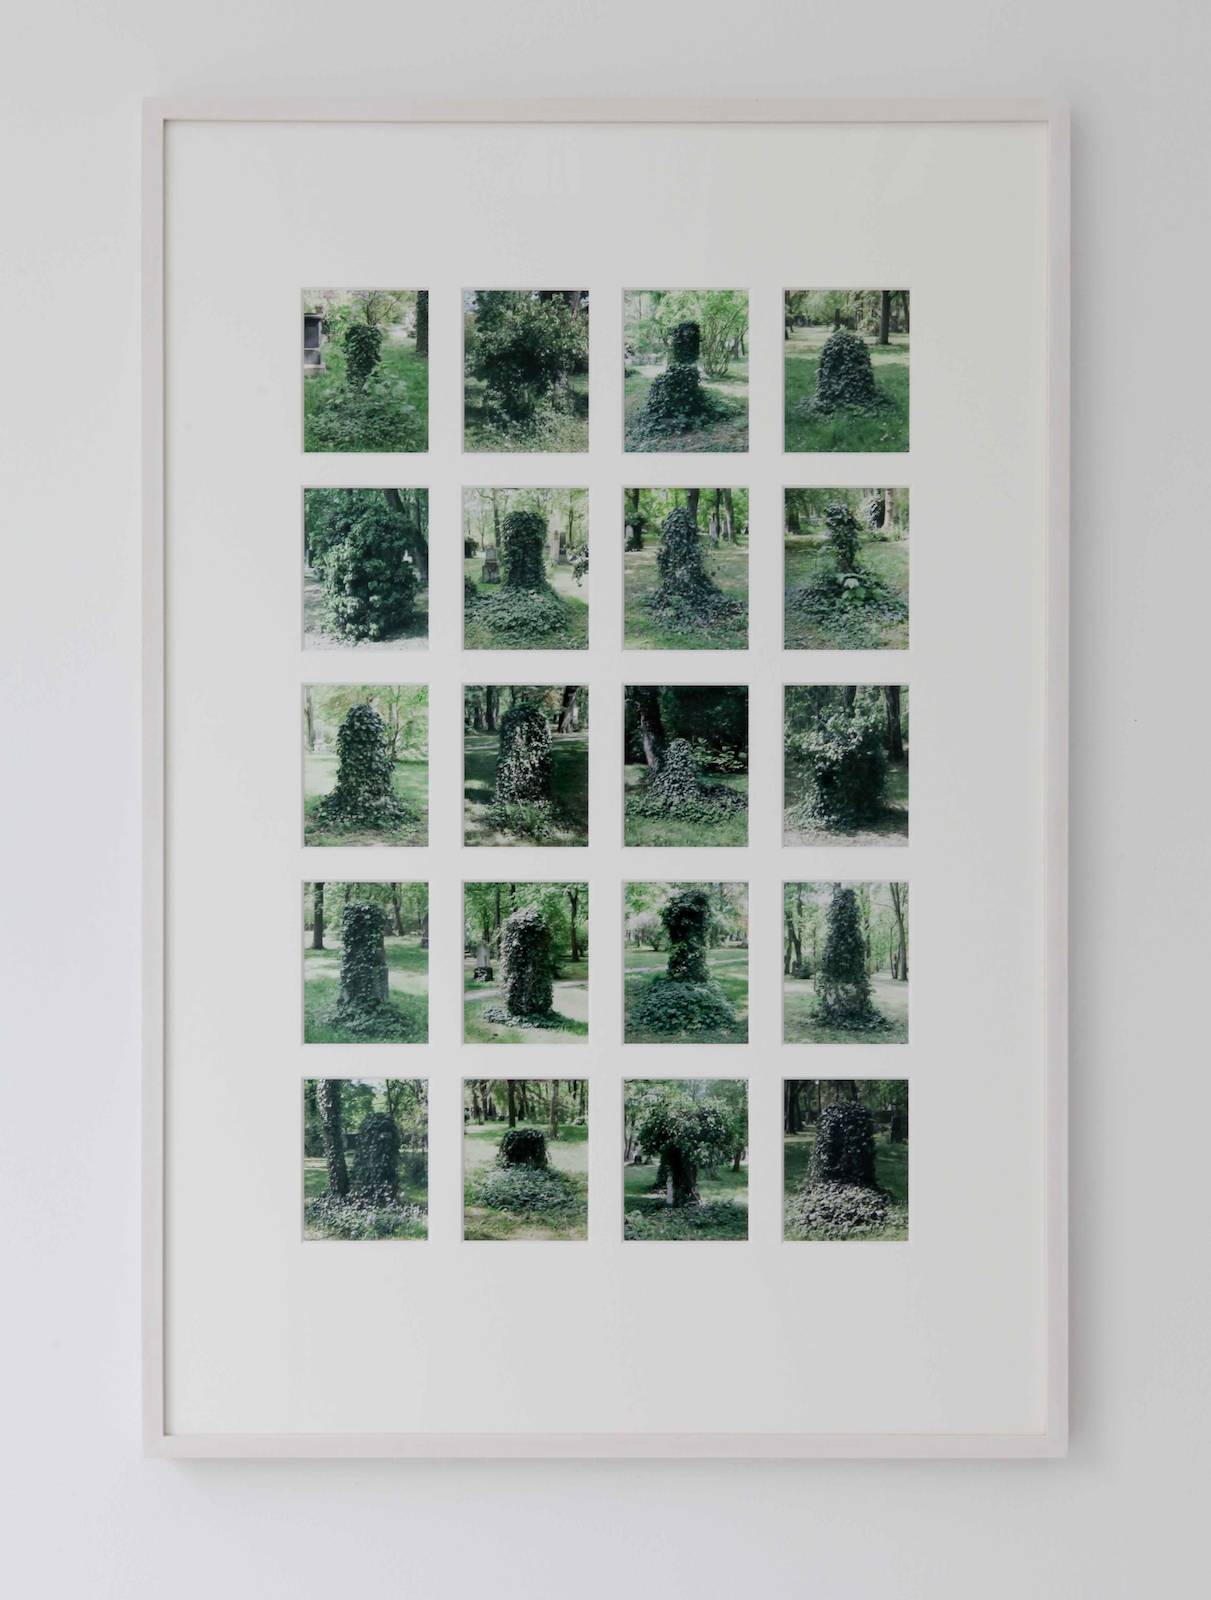 Alter Nordfriedhof, 2007-2011, photographs in artist's frame, 63,5 x 93,5 cm, edition of 5